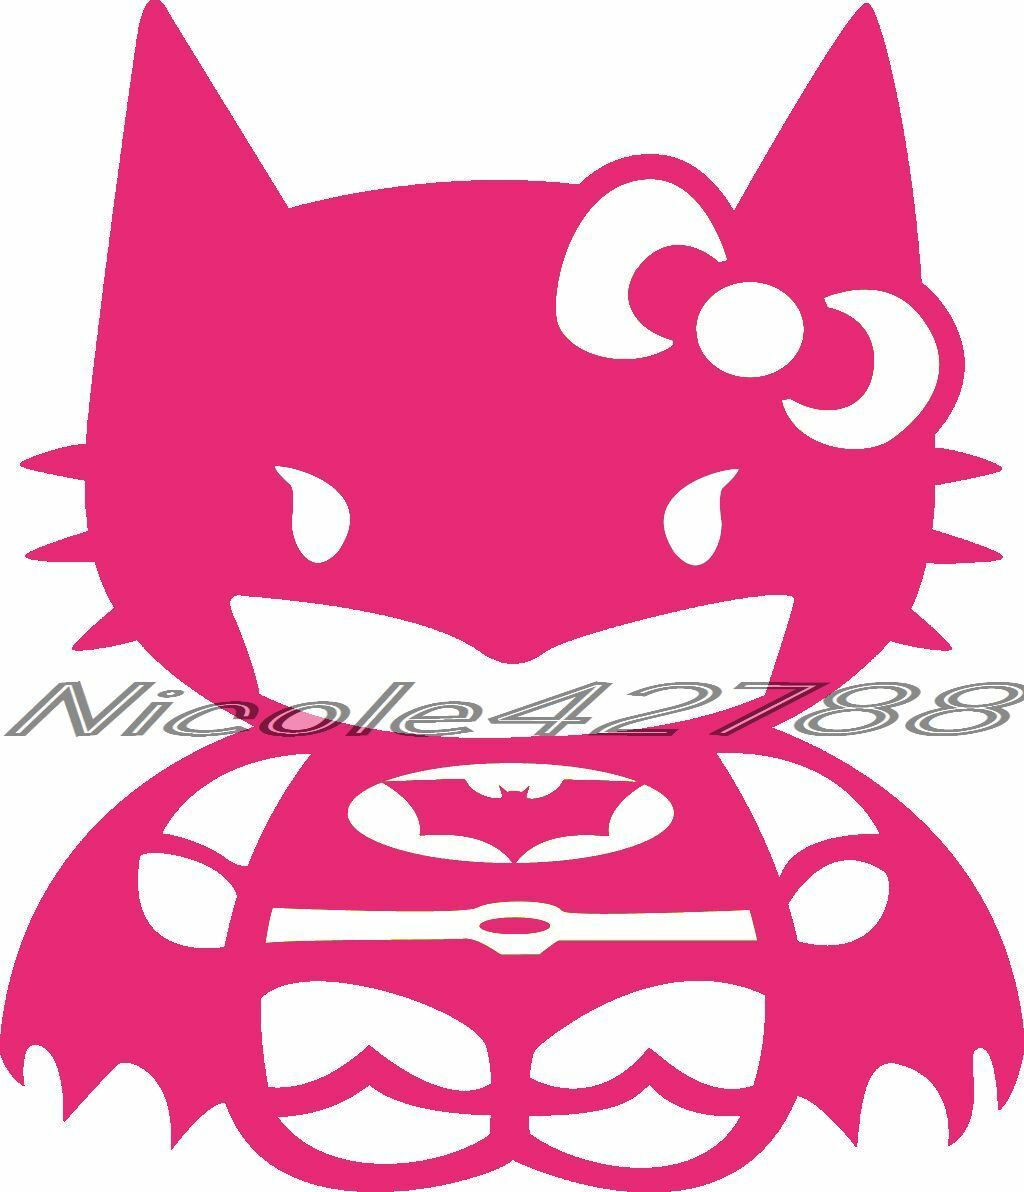 Vinyl Hello Kitty Batman Decal Sticker Laptop Tablet Car Decal